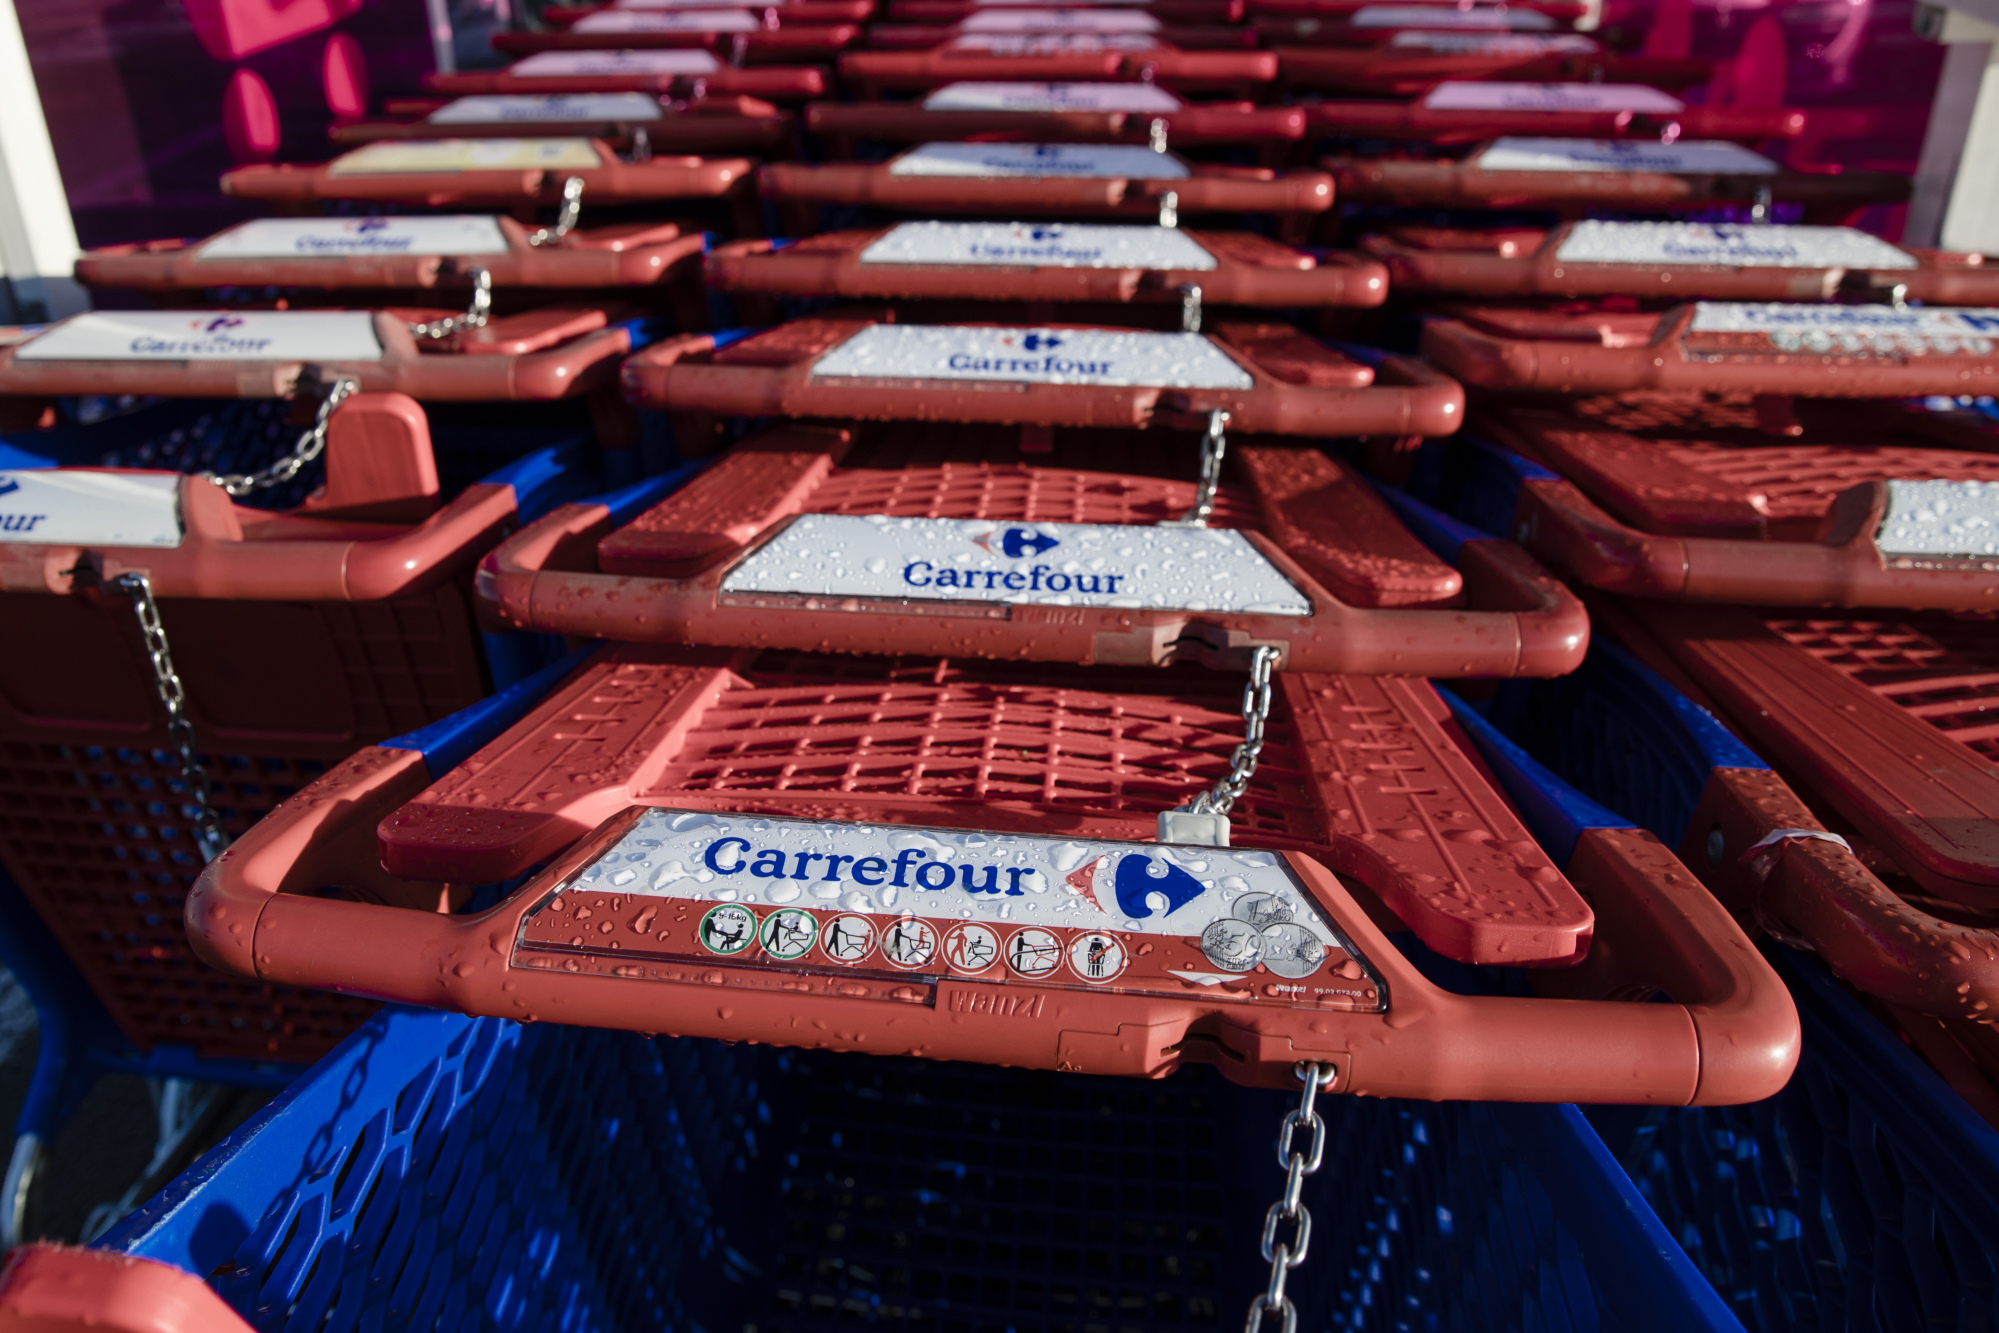 Locked shopping carts stand in a customer collection bay outside a Carrefour SA supermarket in the Rosny-sous-bois district of Paris, France.